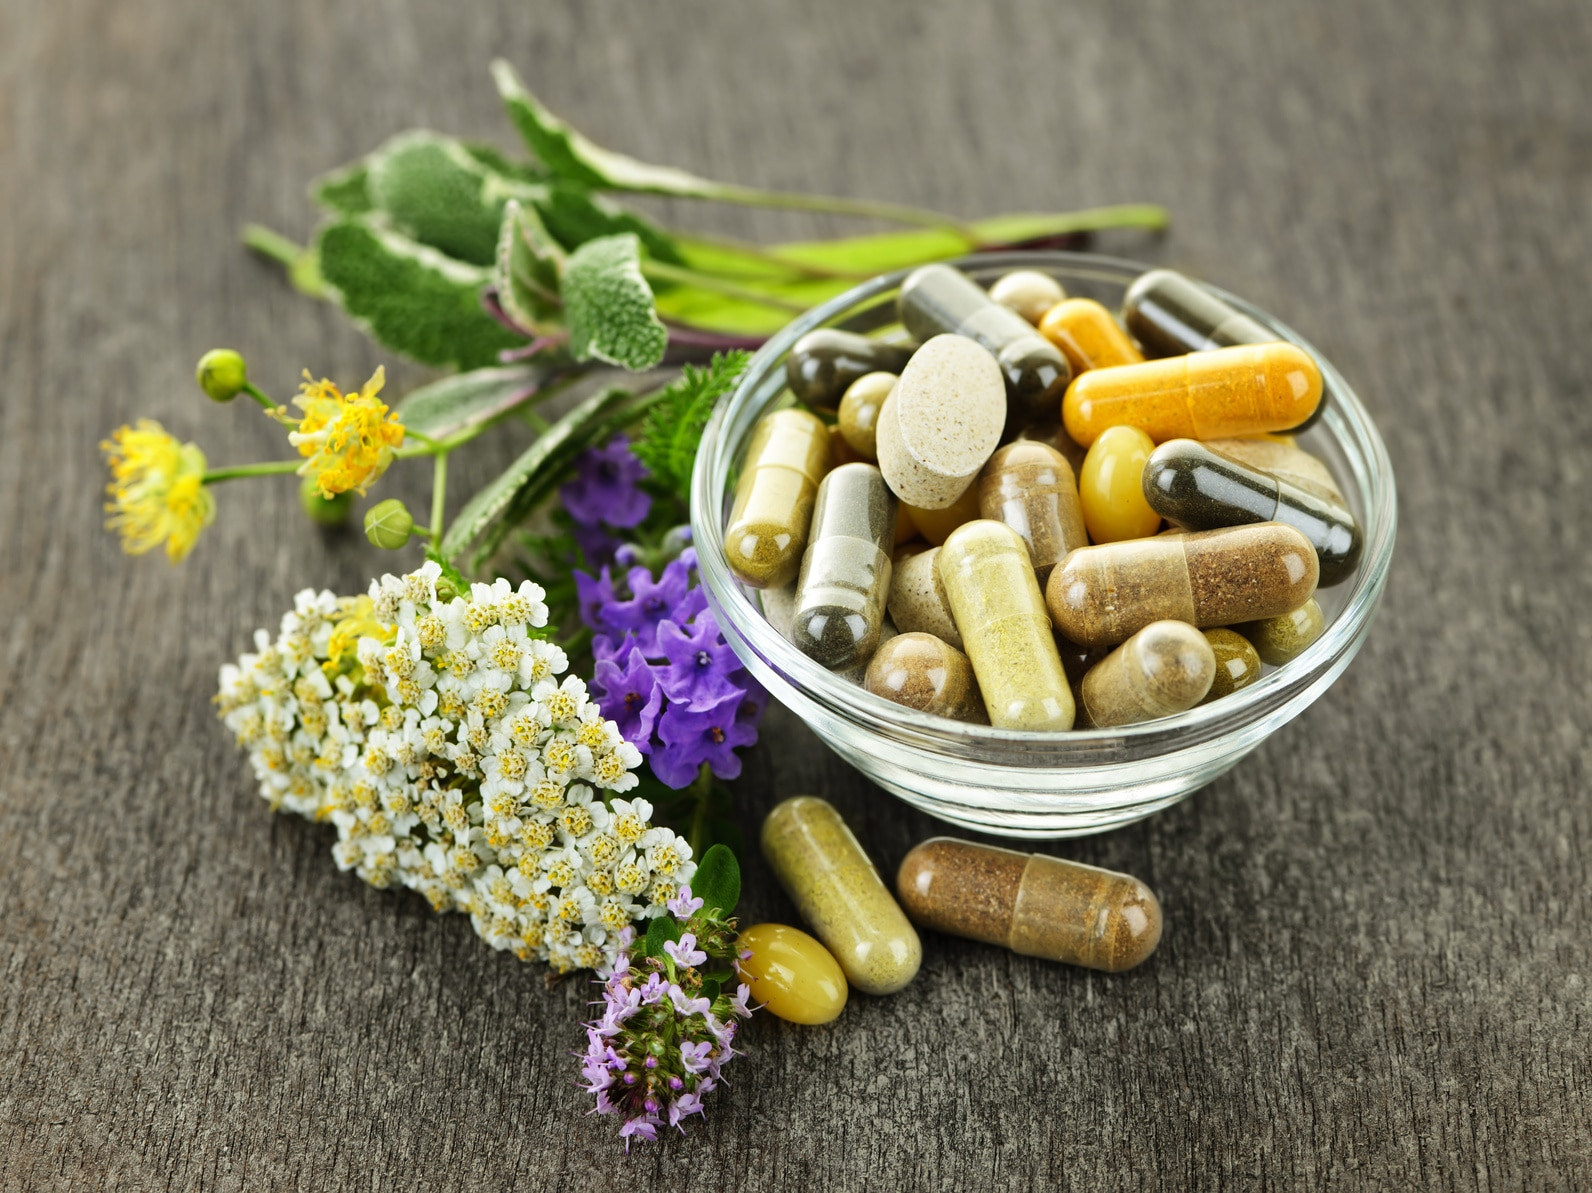 Naturopathic Medicine at Richmond Natural Medicine